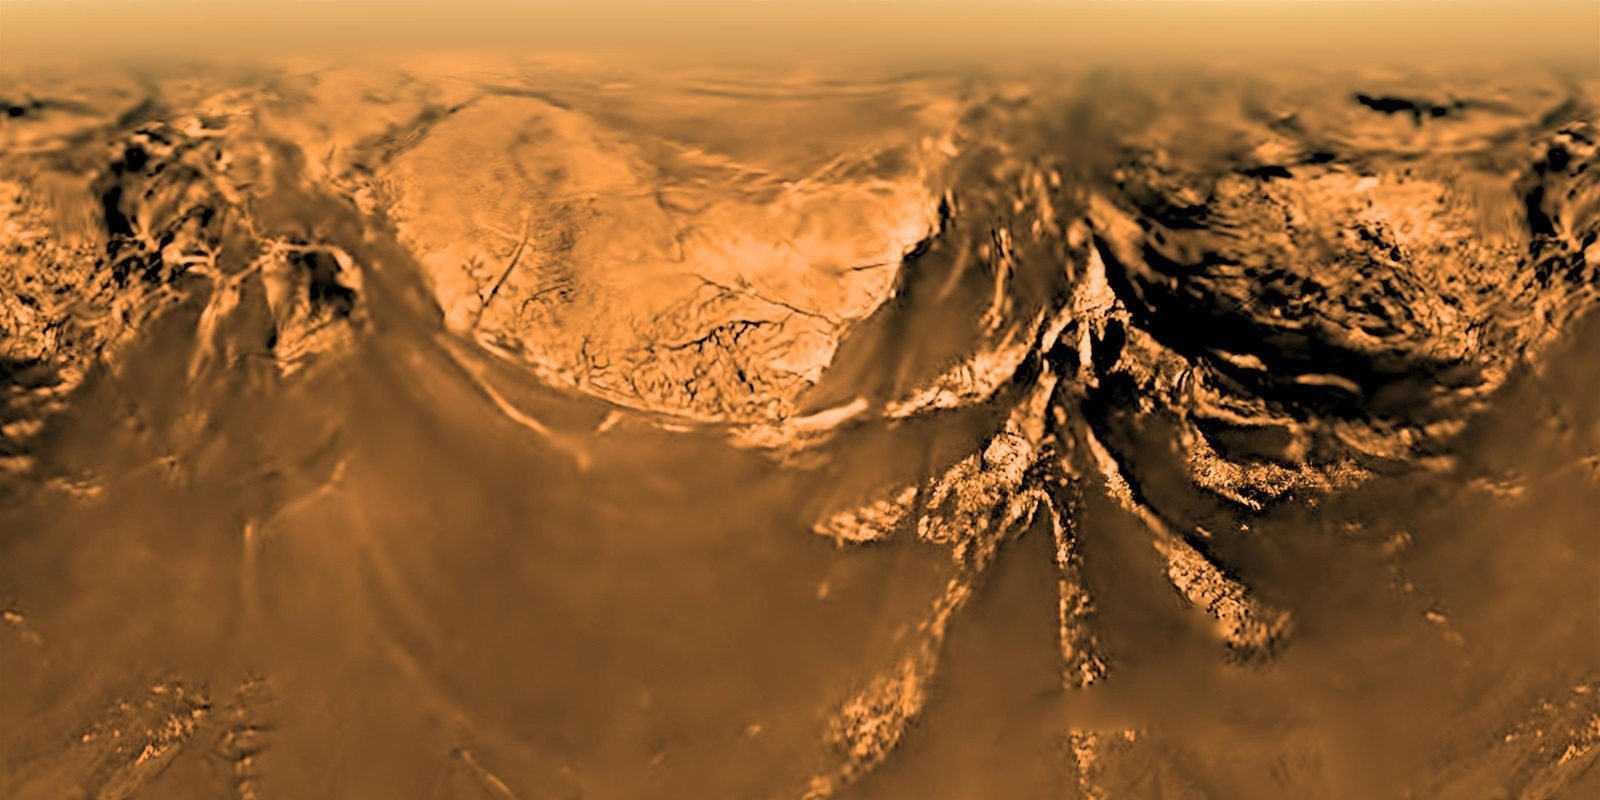 View of Titan the Huygens probe